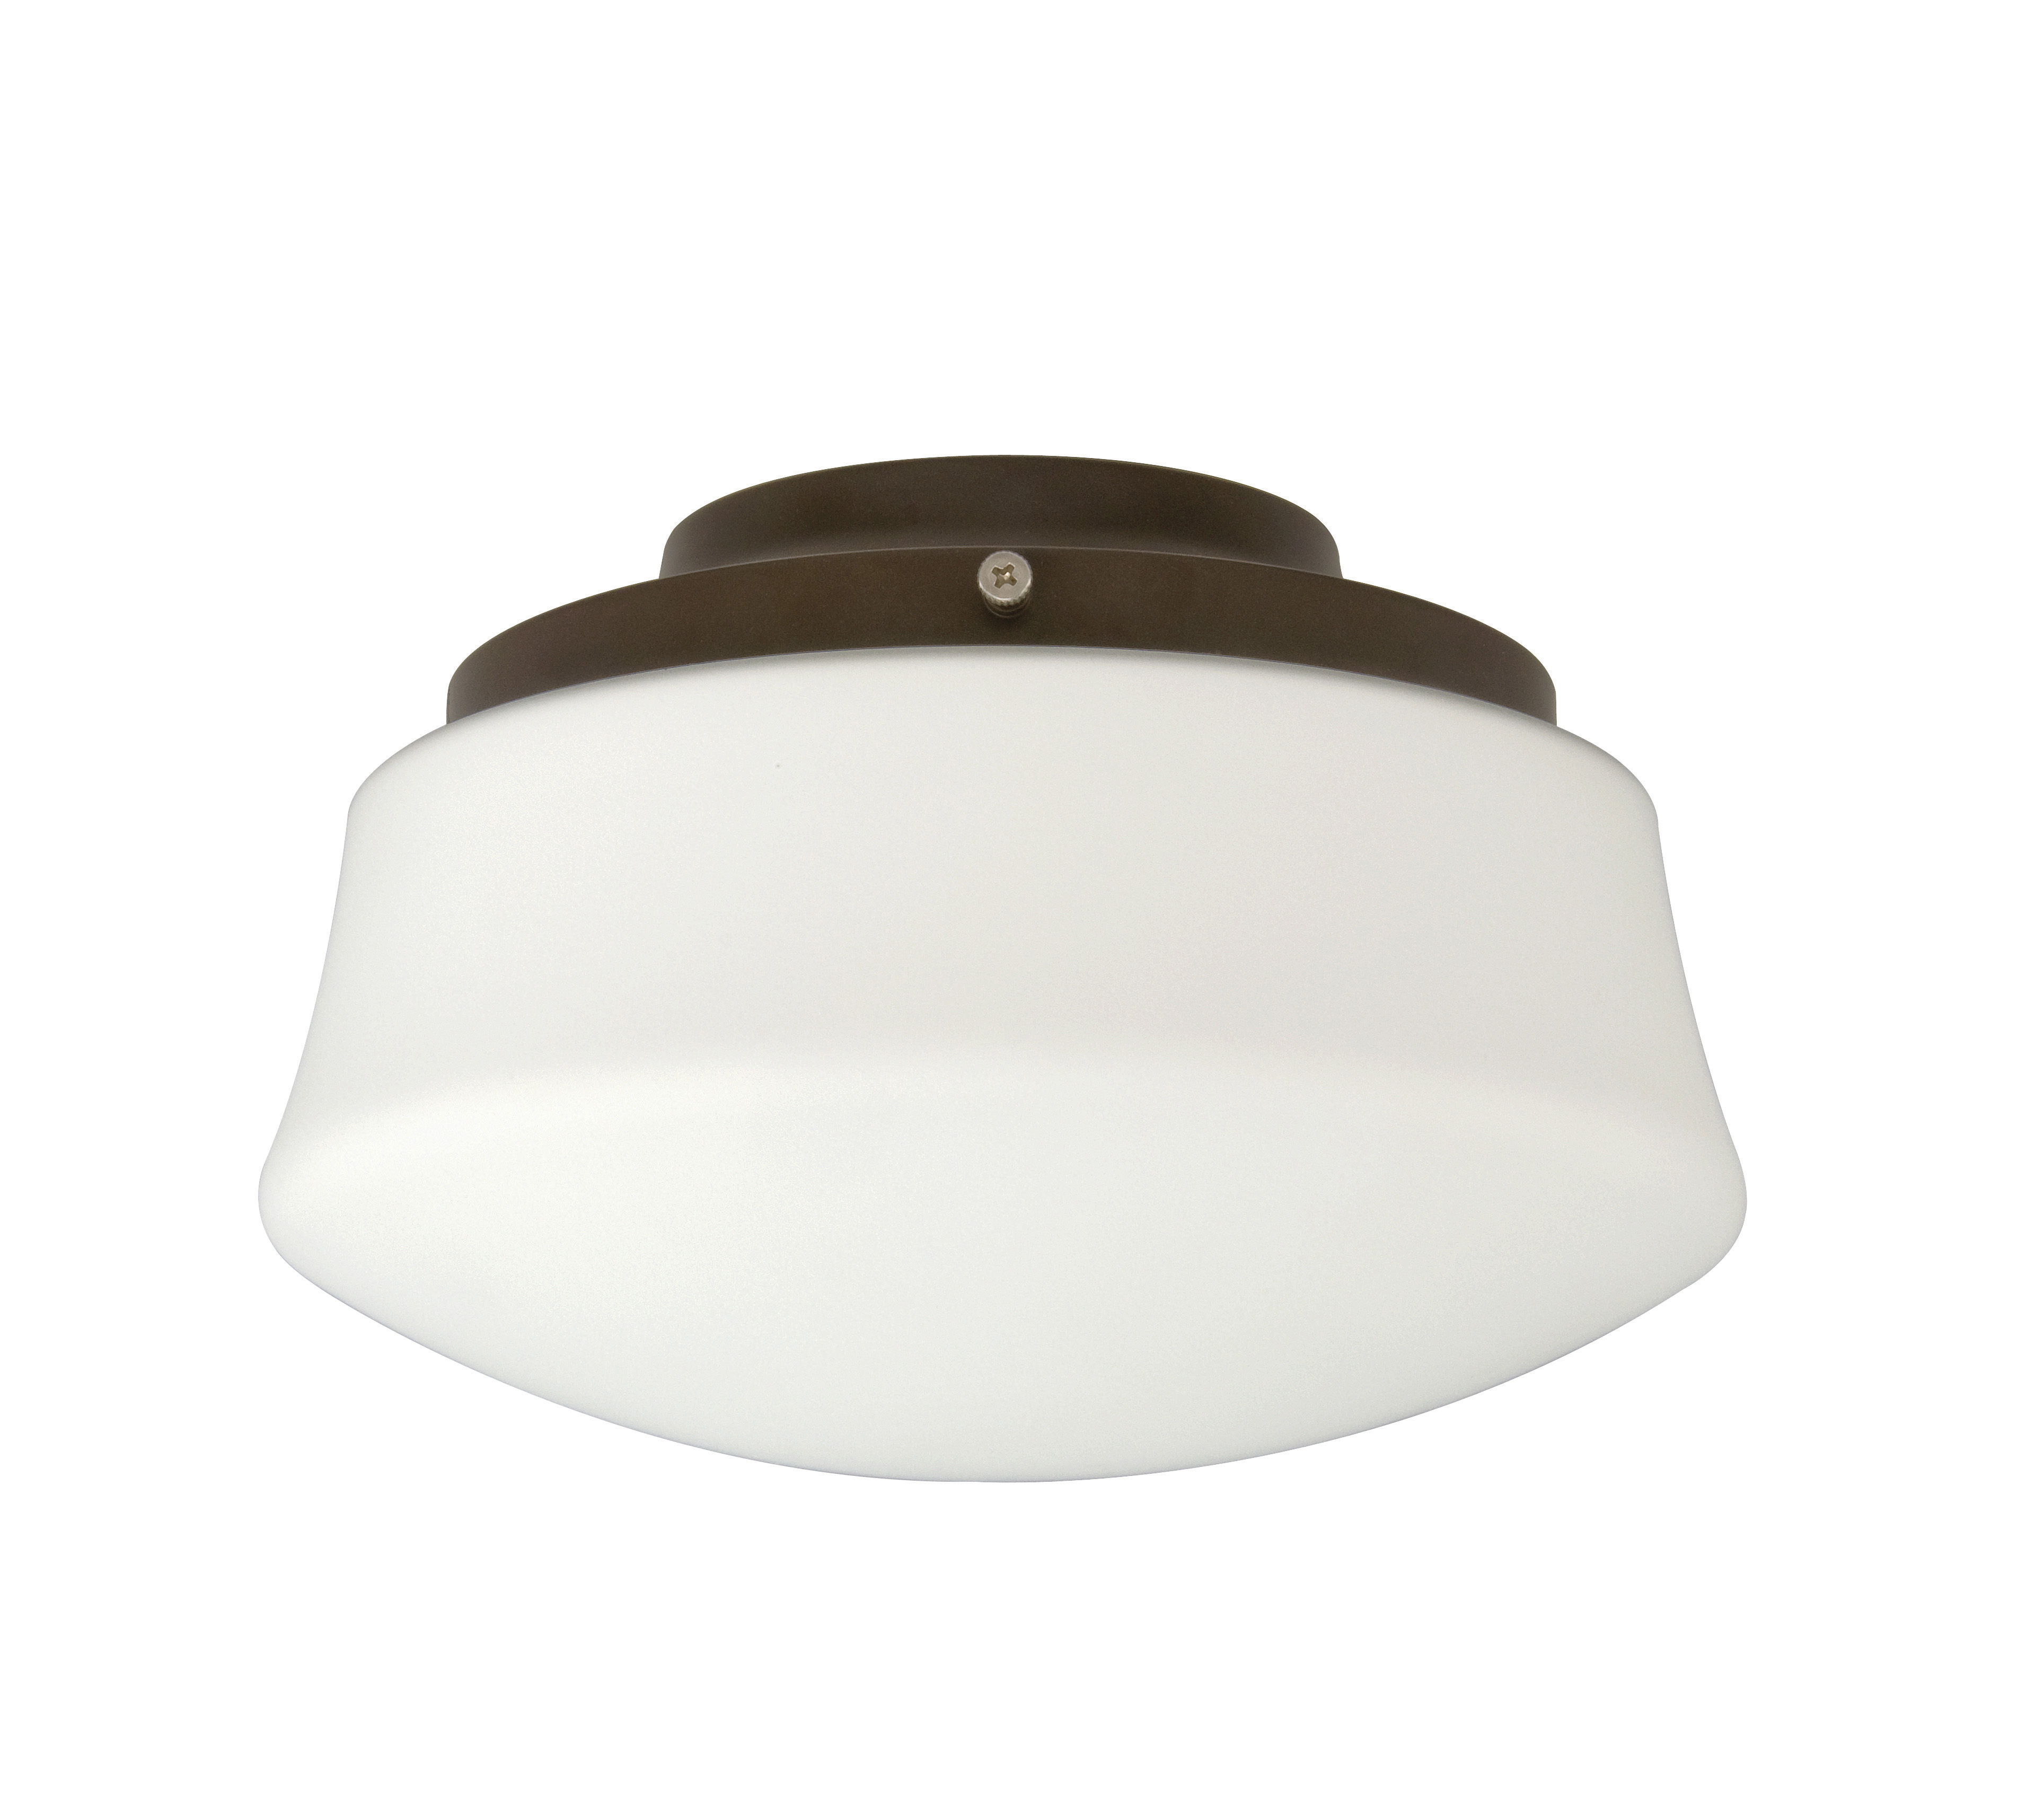 low profile ceiling fan light kit photo - 3